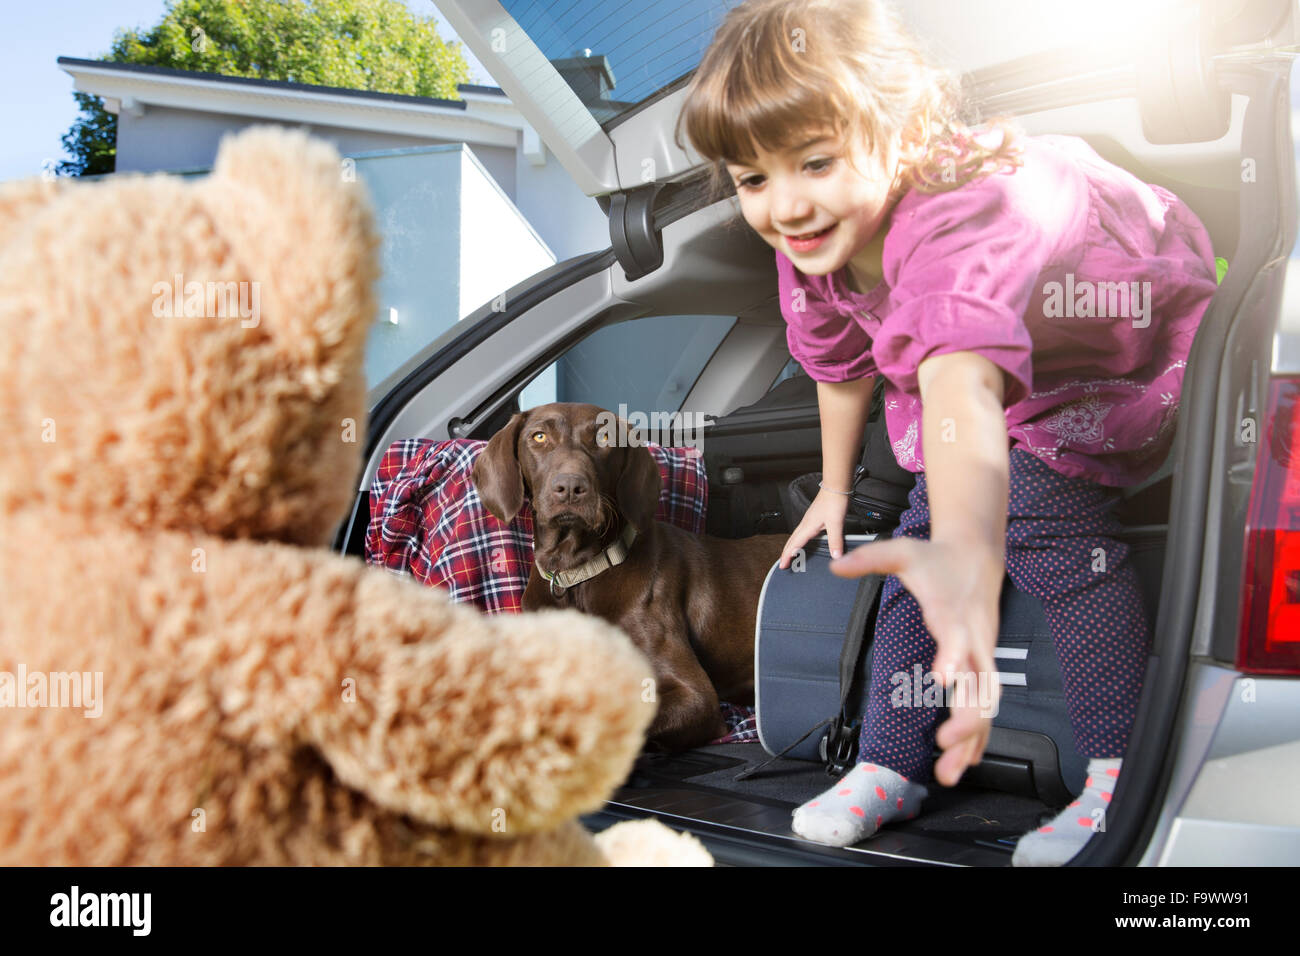 Smiling girl in car boot with dog looking at teddy bear - Stock Image